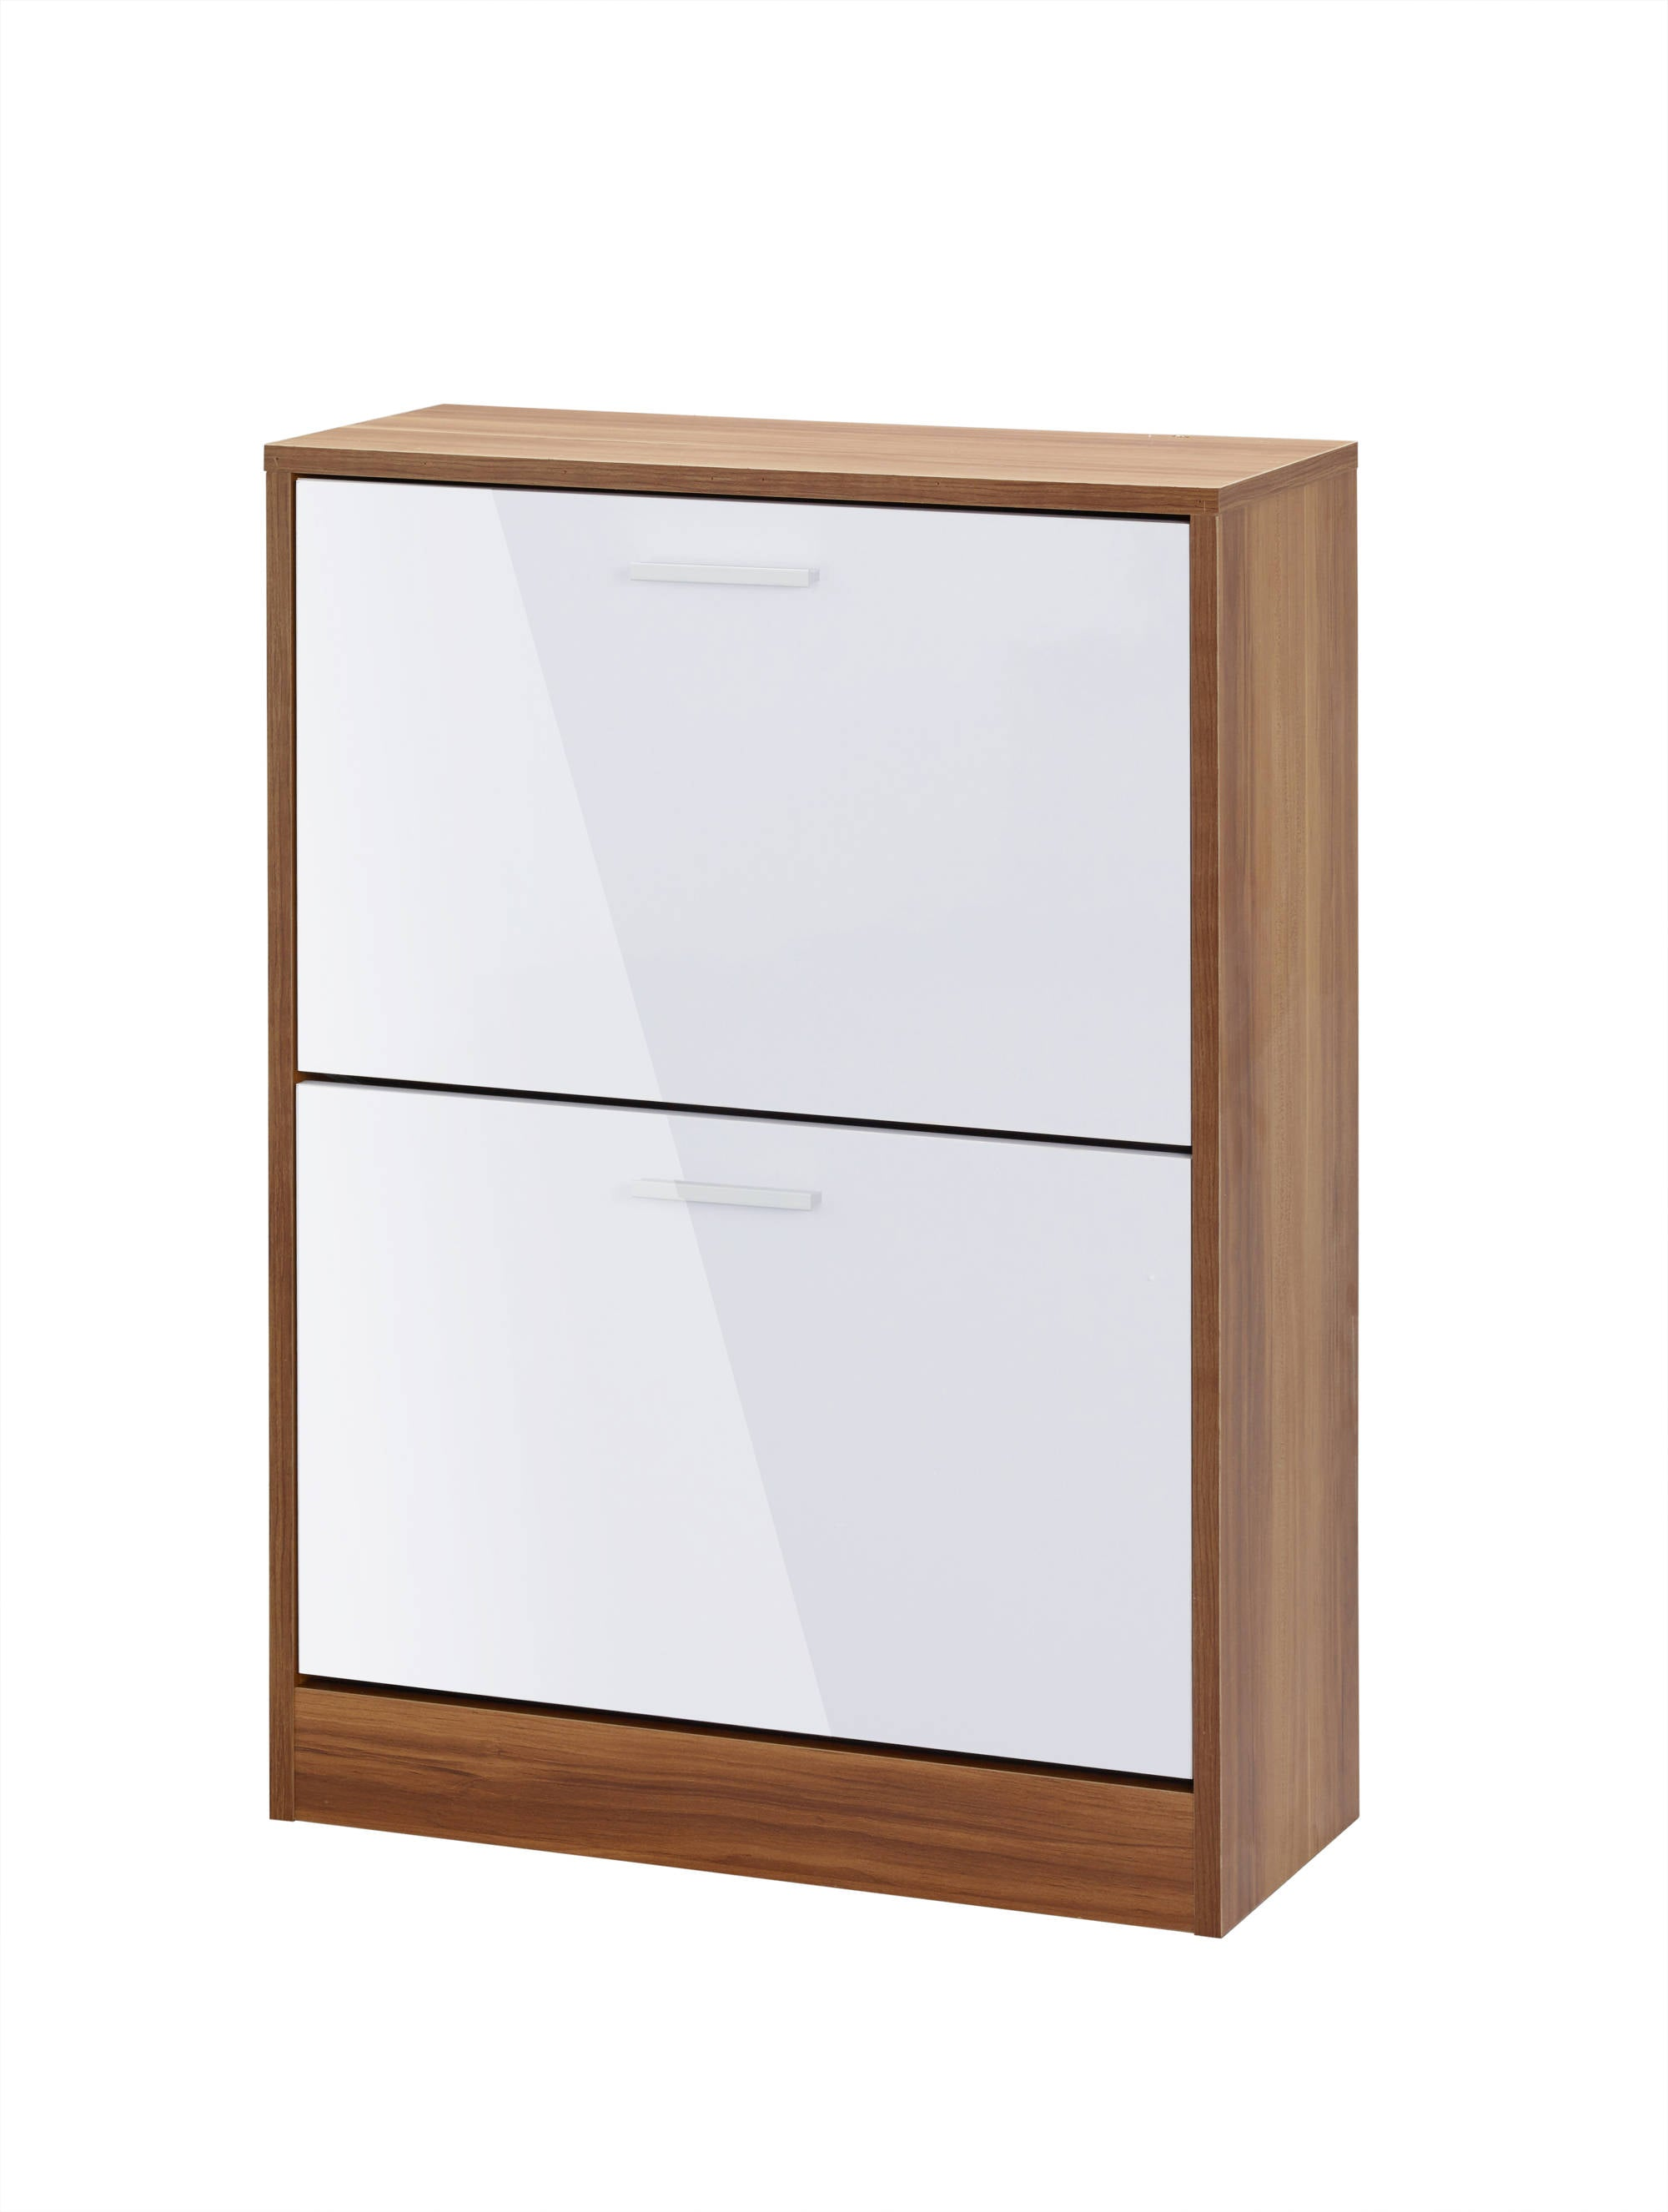 Chancery 2 Drawer Shoe Cabinet in White - Ezzo